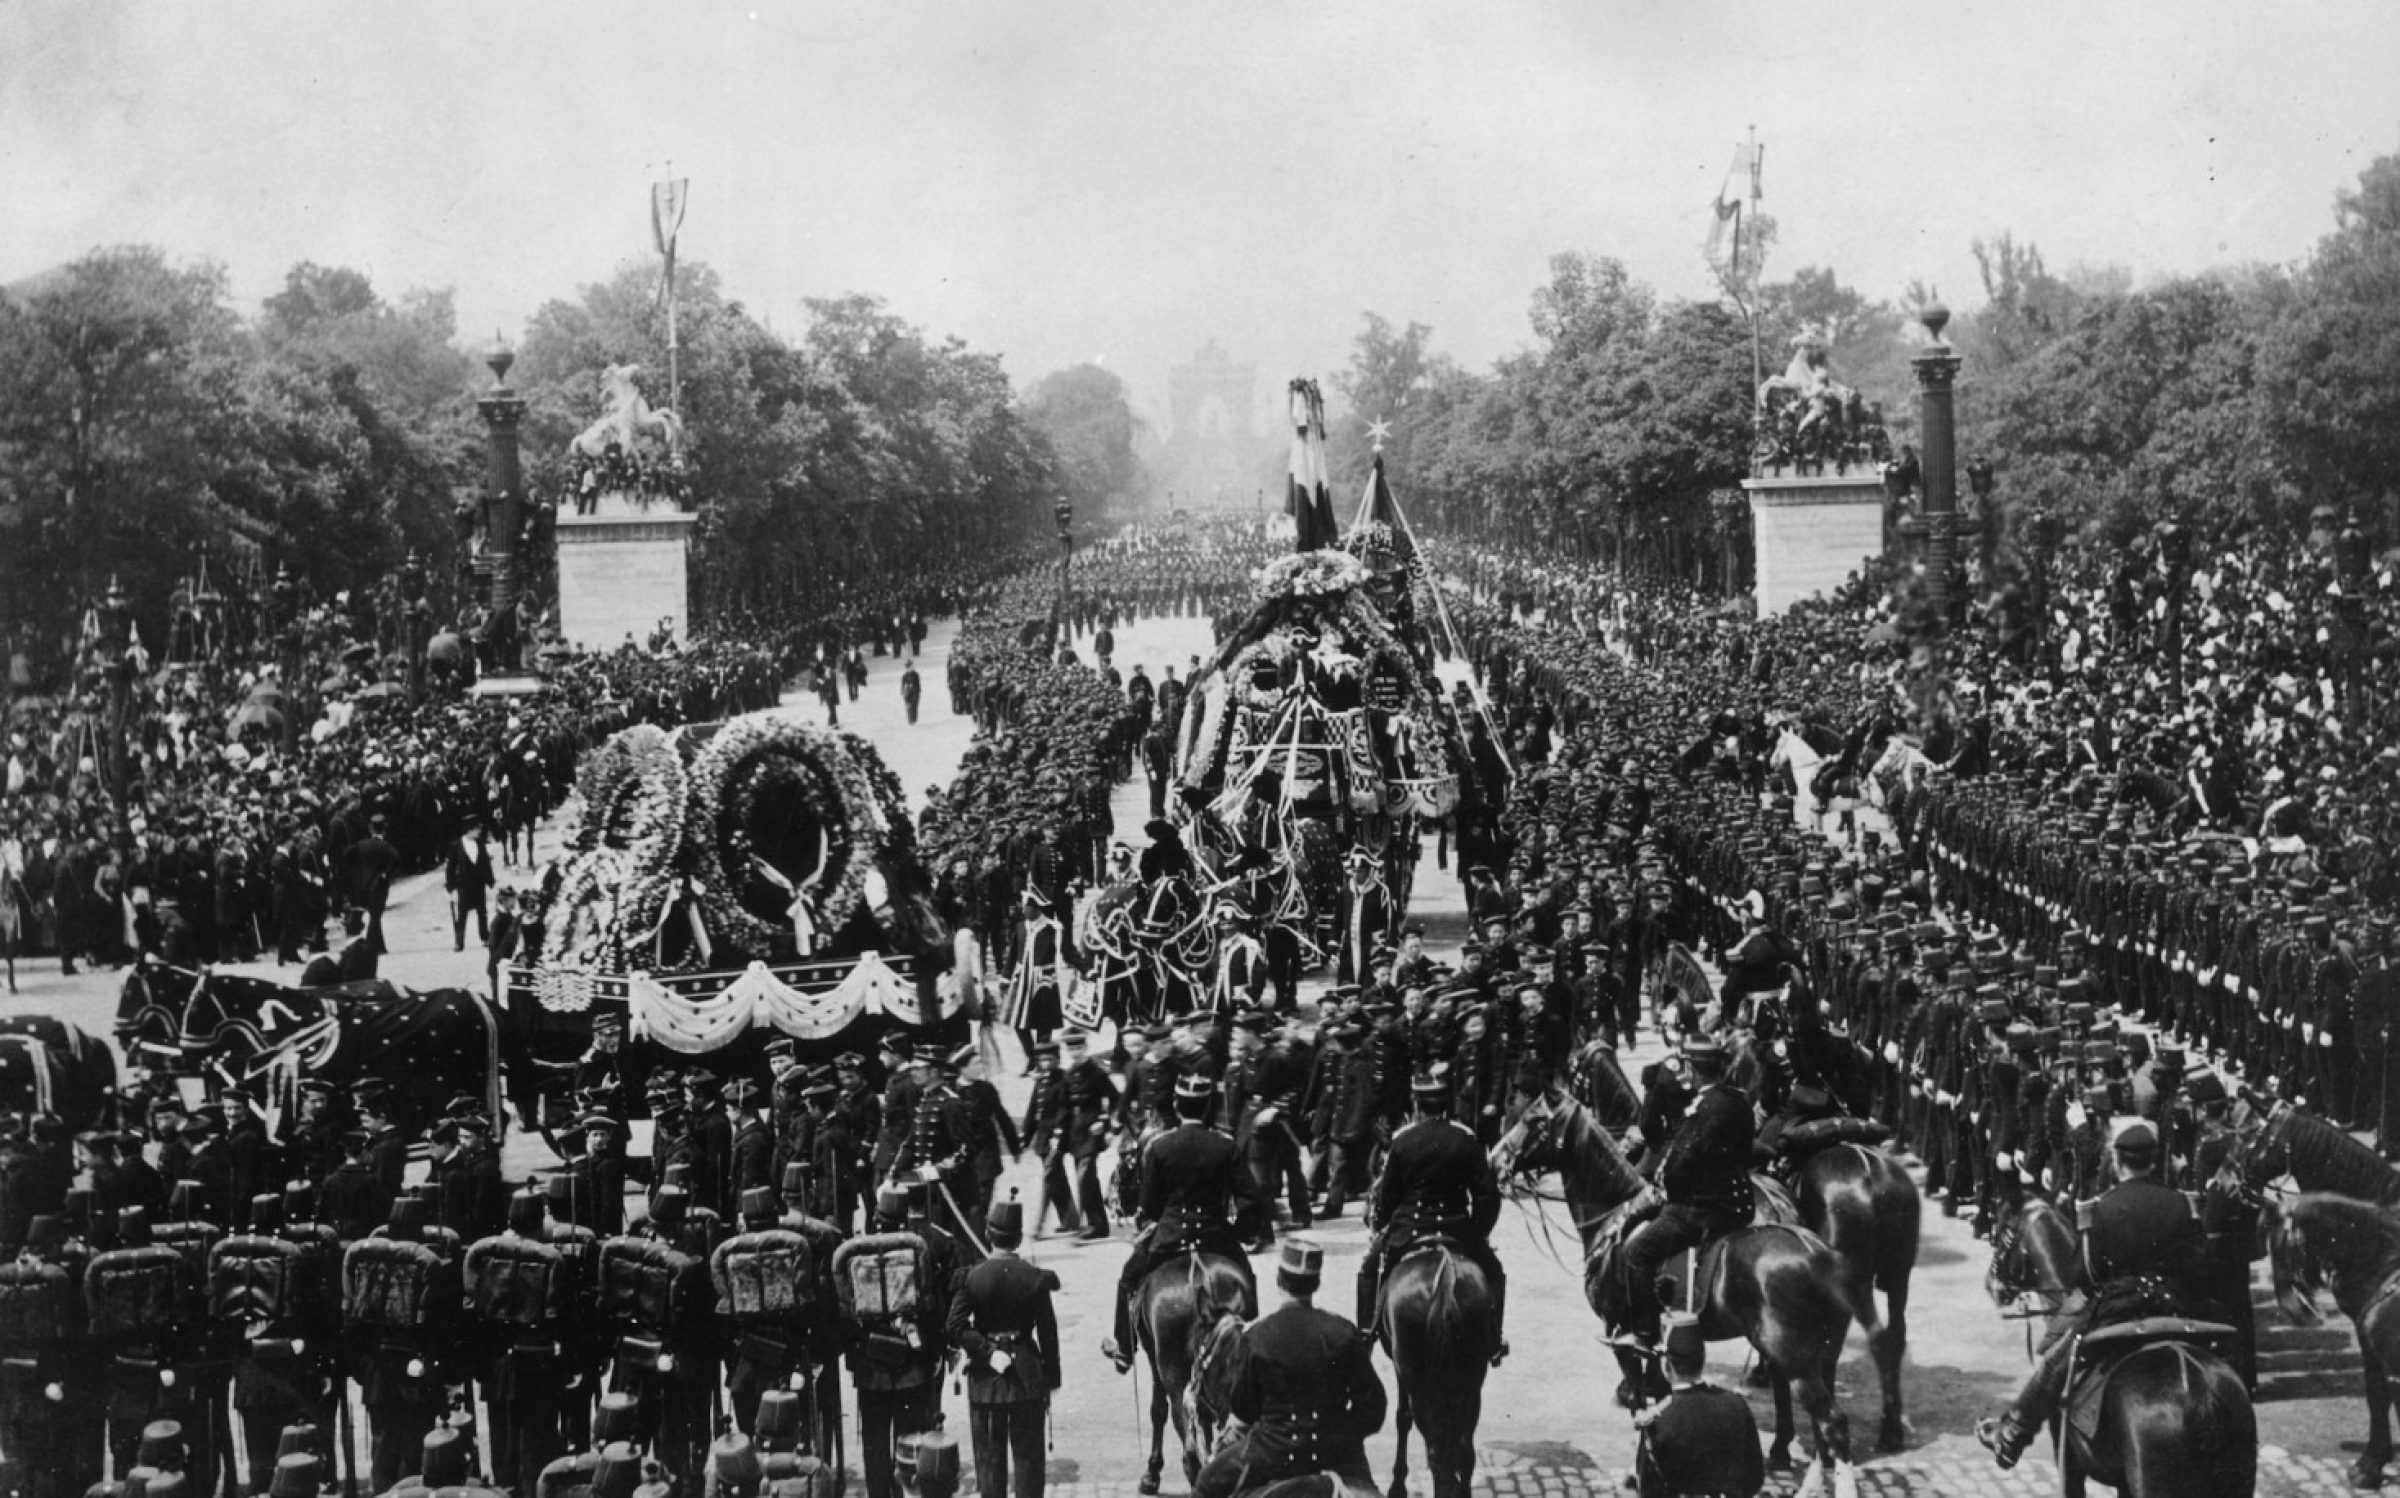 The public funeral of Victor Hugo in Paris, 1885. Credit: Rischgitz / Getty Images.